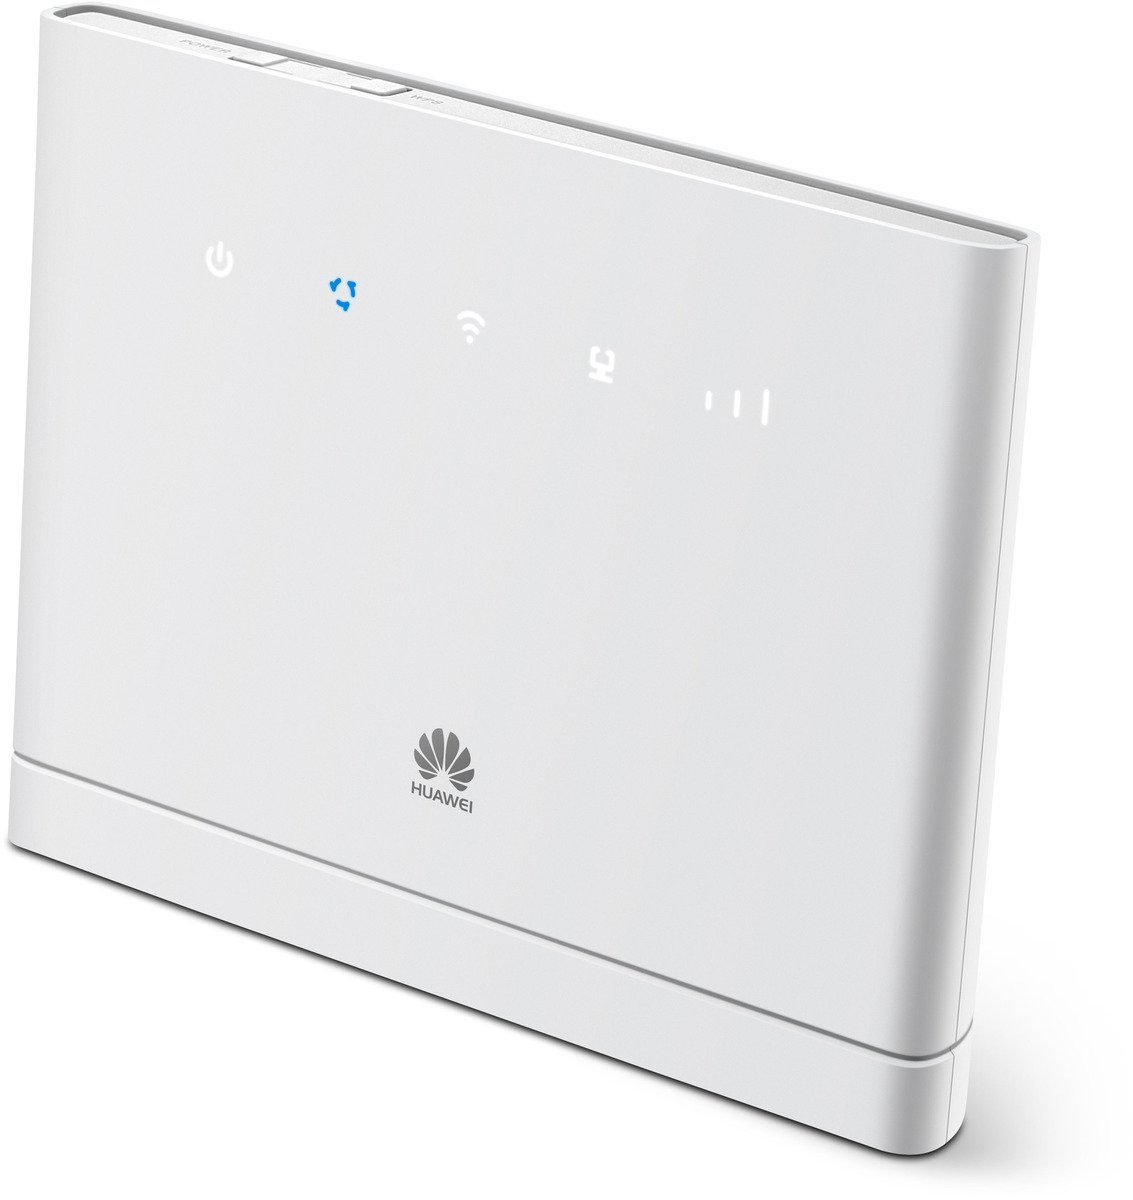 Huawei Mobiler Router »B315 3G/4G Router LTE«